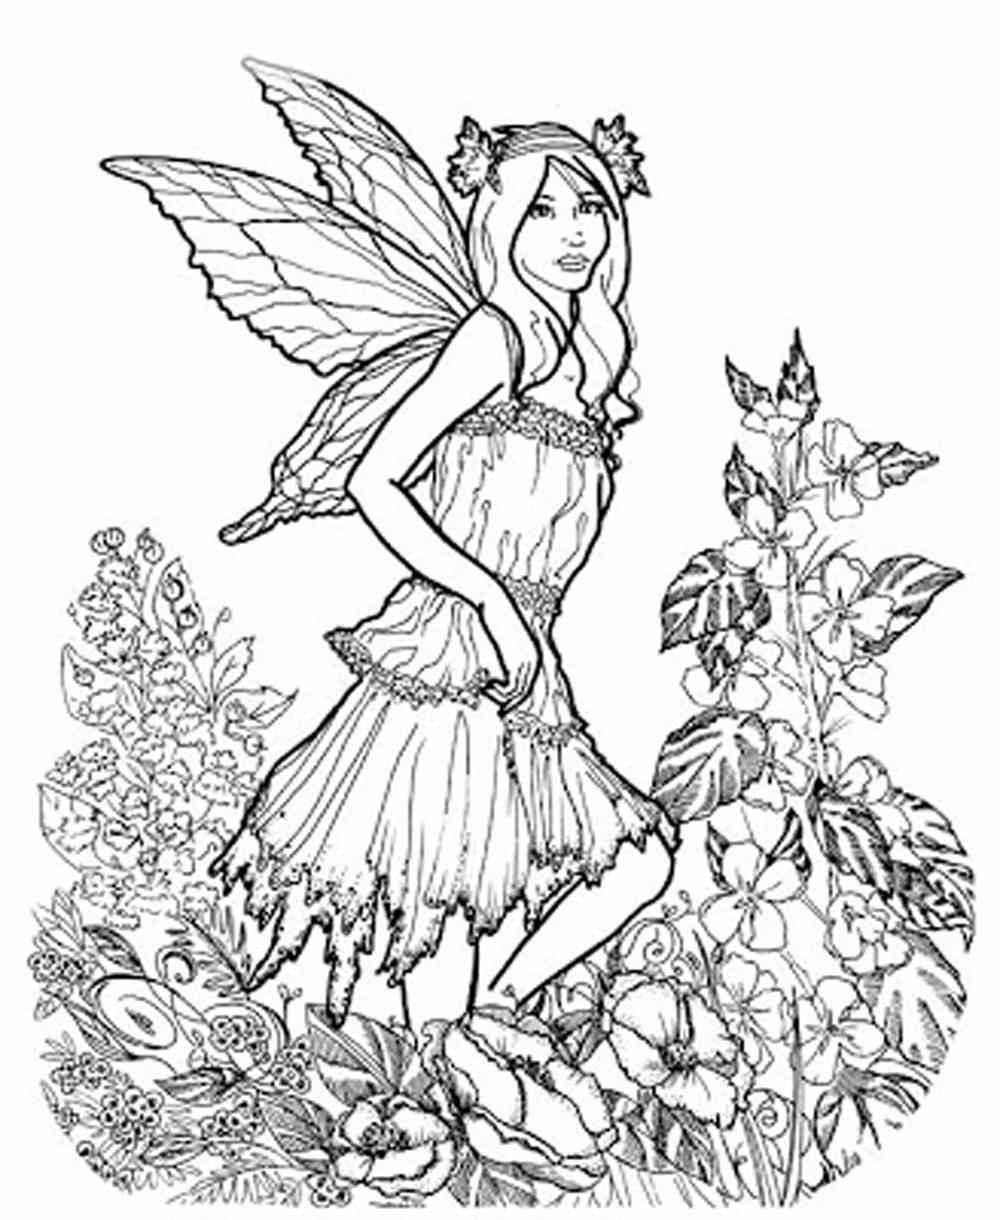 Detailed Fairy Detailed Coloring Pages For Kids